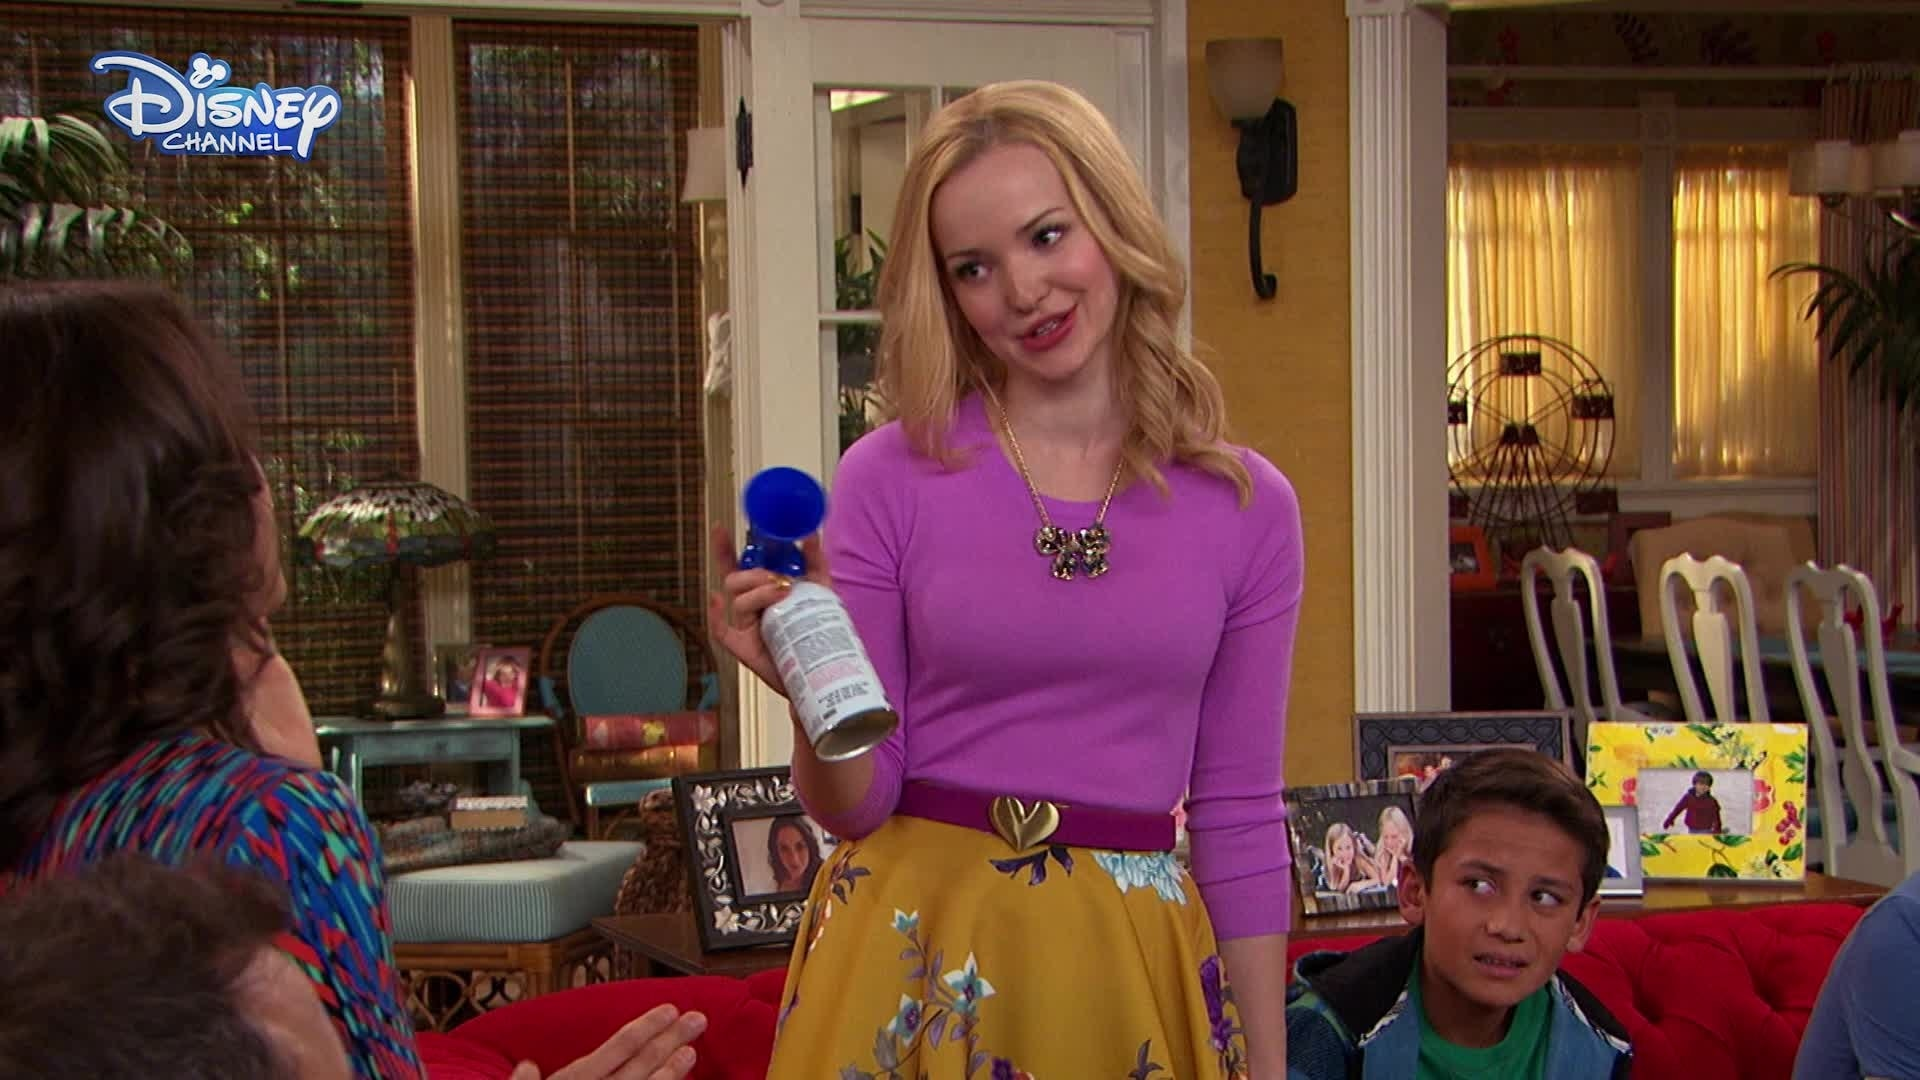 Disney channel coloring pages liv and maddie - Disney Channel Coloring Pages Liv And Maddie 47